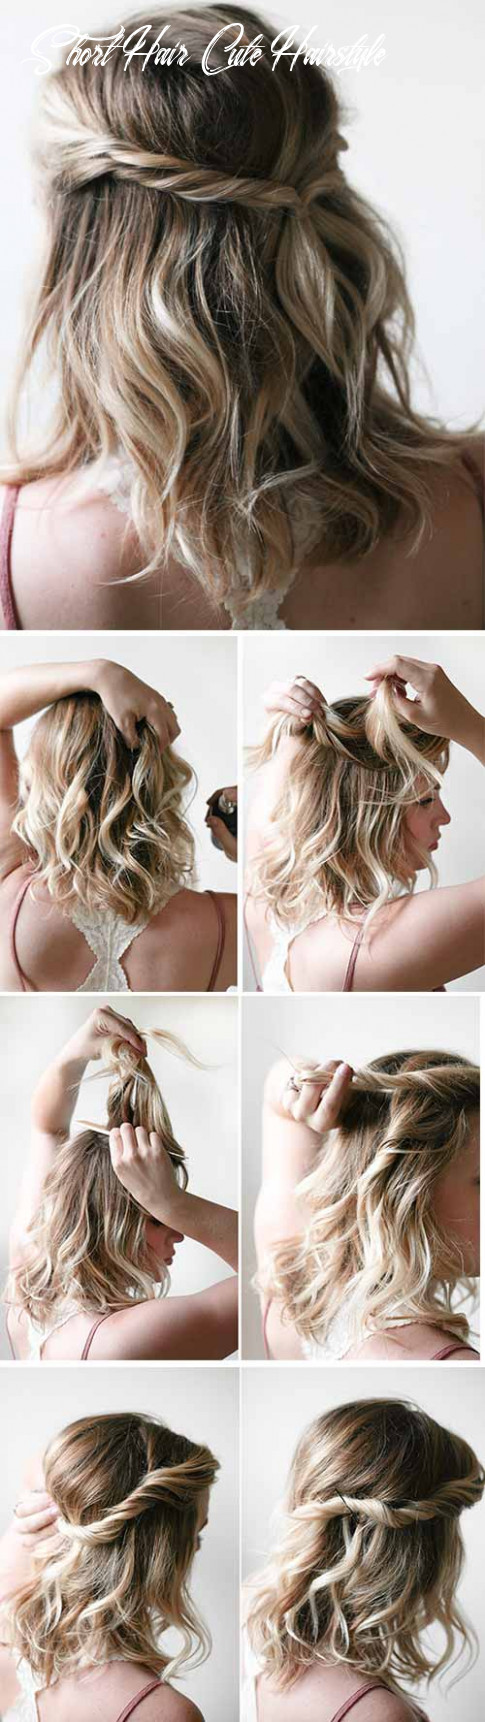 8 Incredible DIY Short Hairstyles - A Step-By-Step Guide